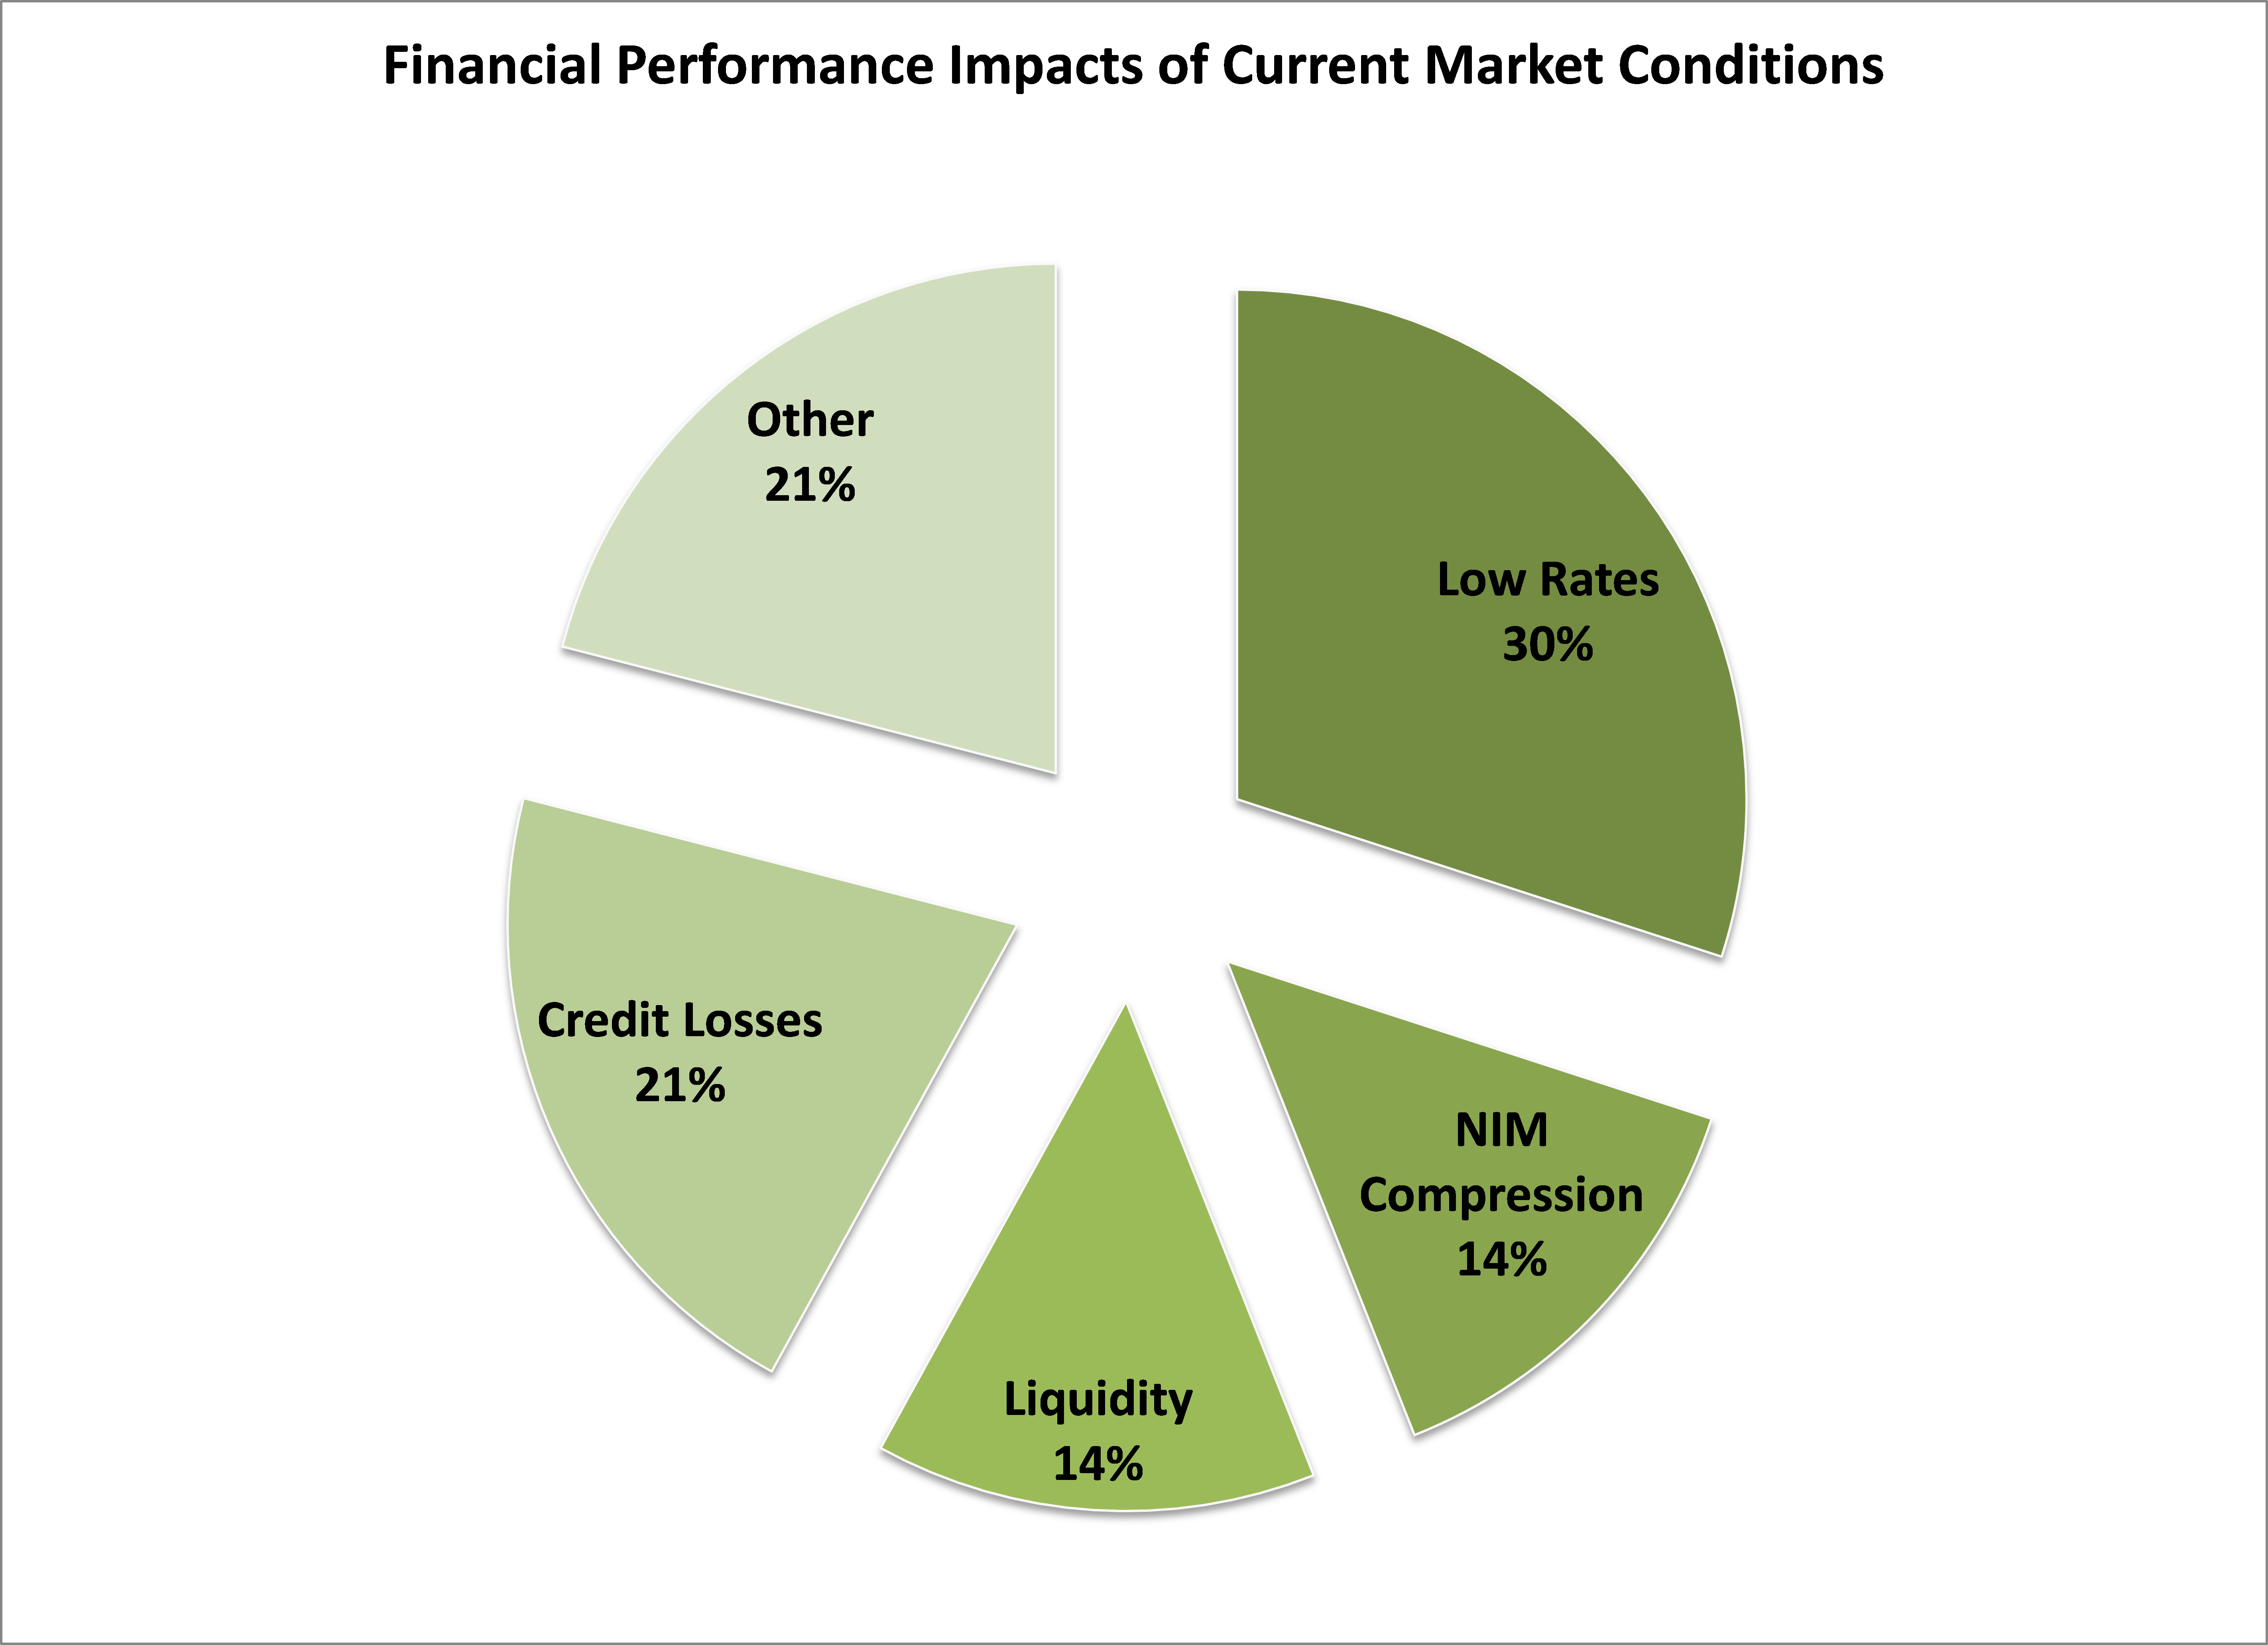 Graph shows response distribution of financial performance impacts of current market conditions